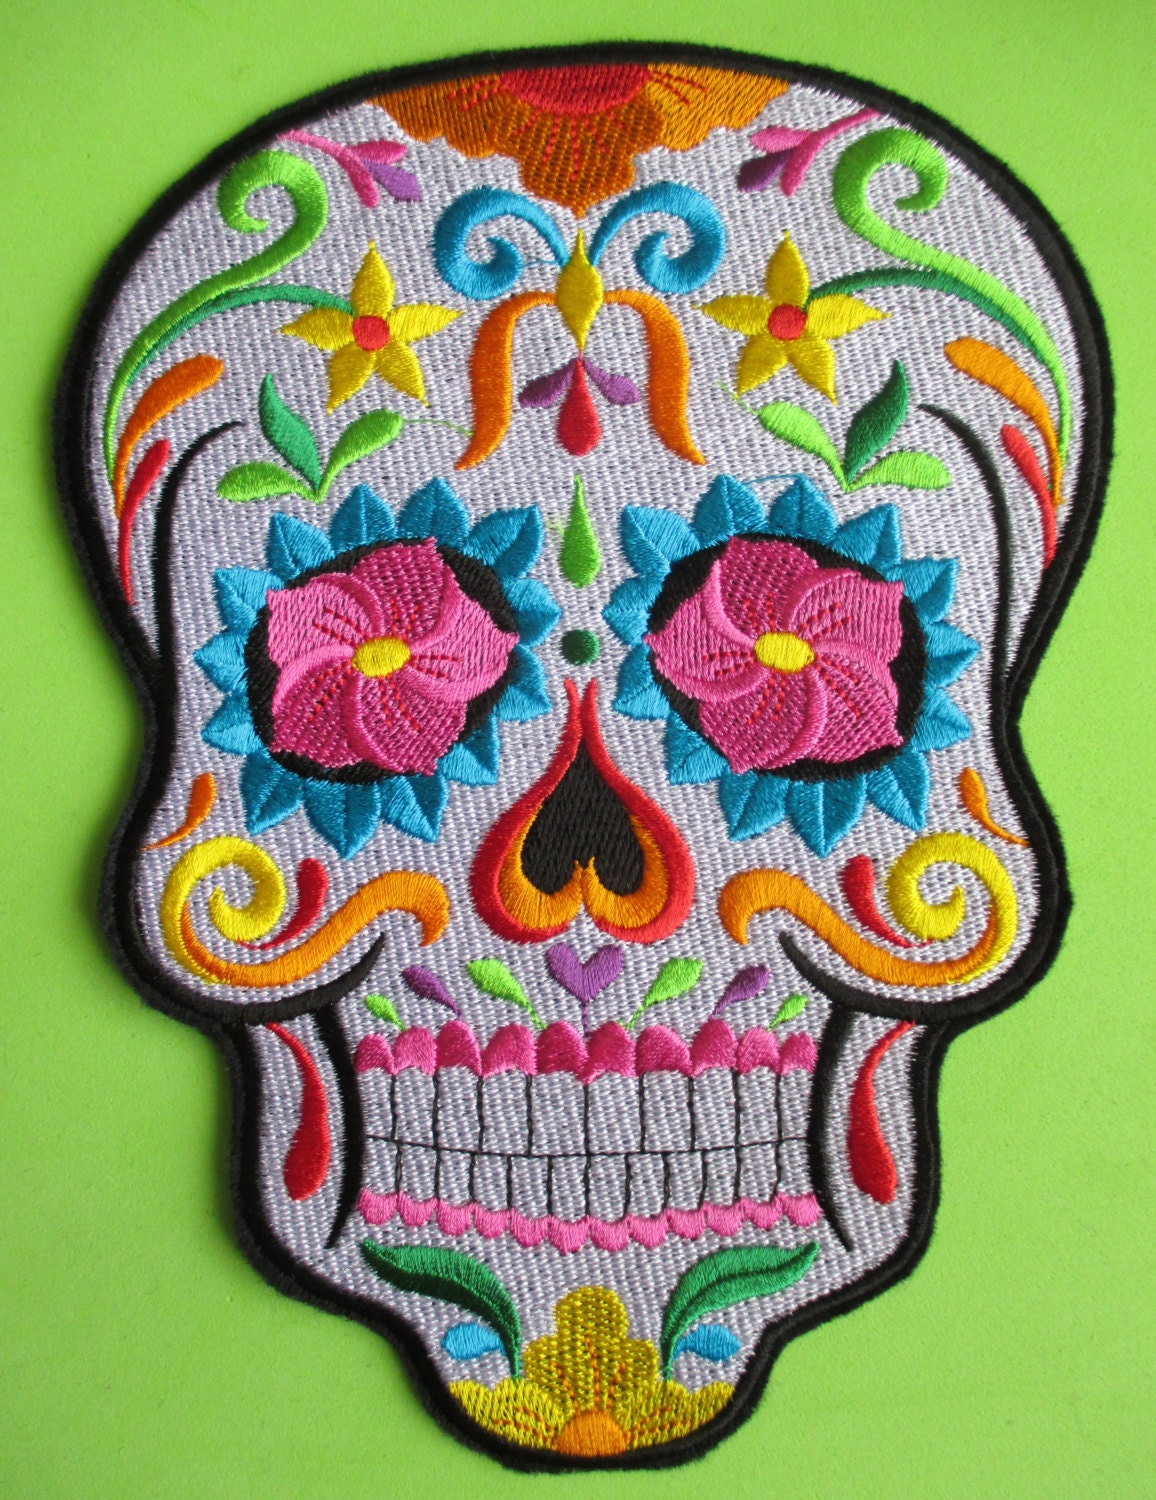 Huge Embroidered Sugar Skull Applique Patch Day of the Dead